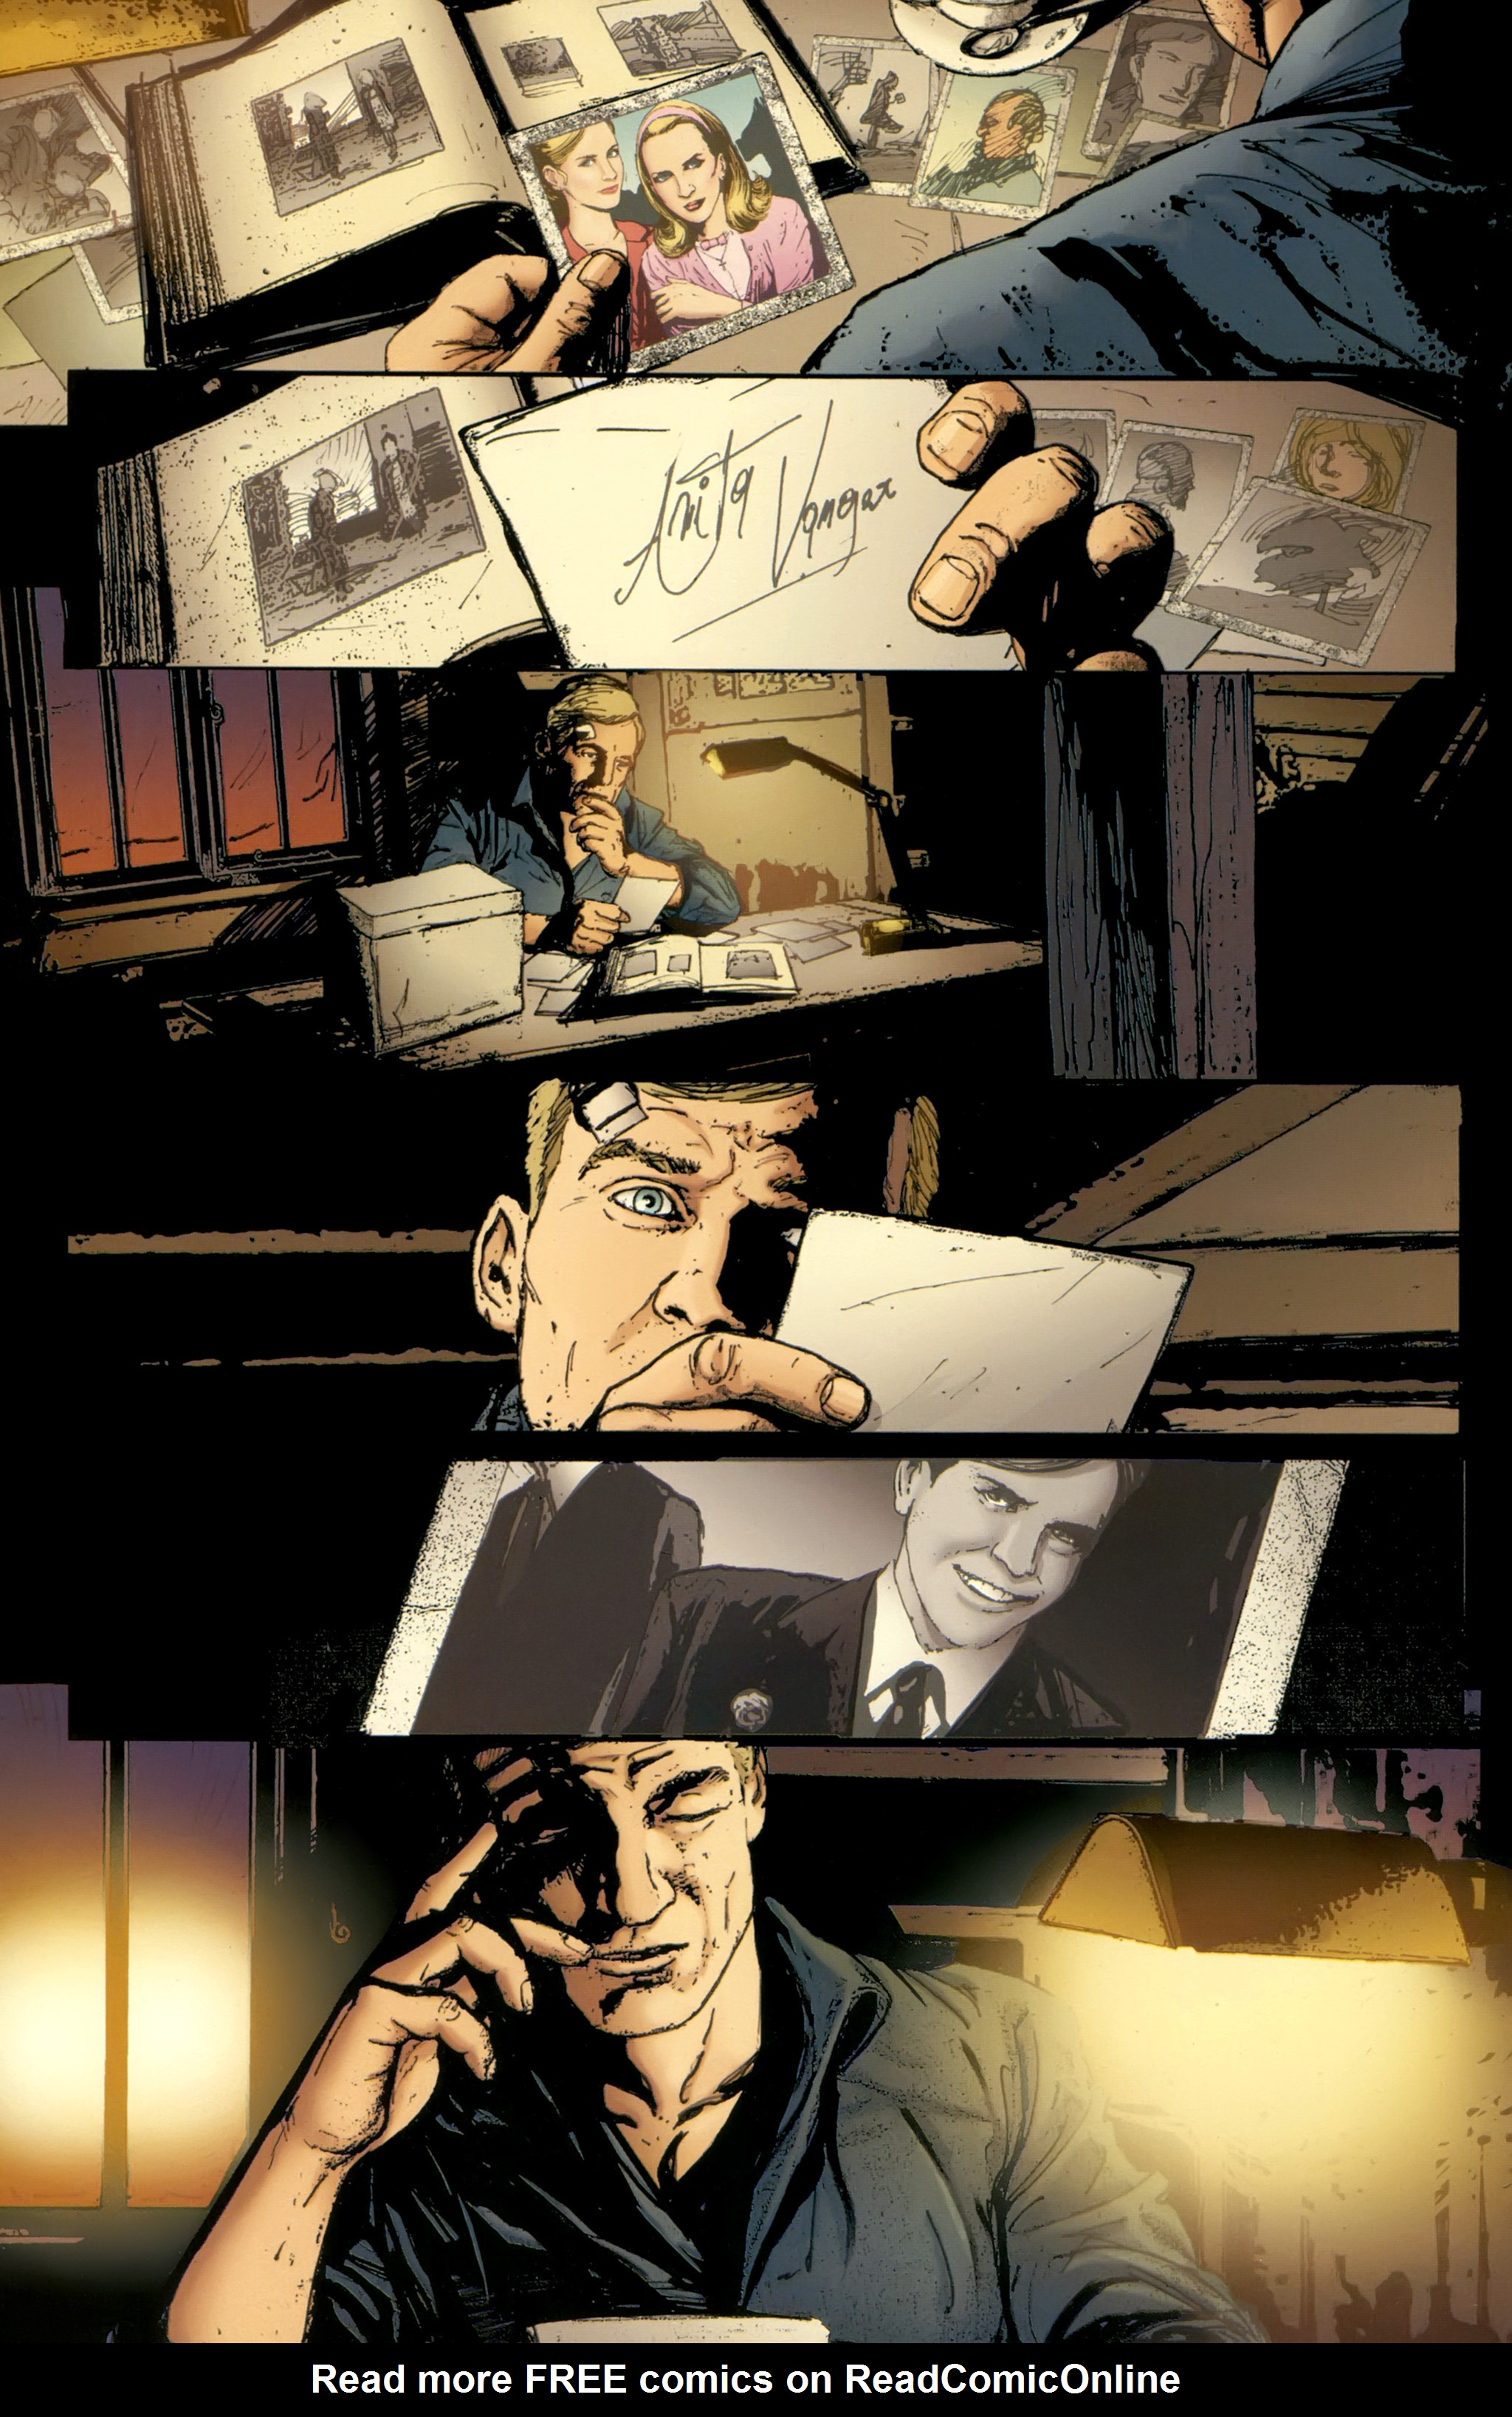 Read online The Girl With the Dragon Tattoo comic -  Issue # TPB 2 - 76